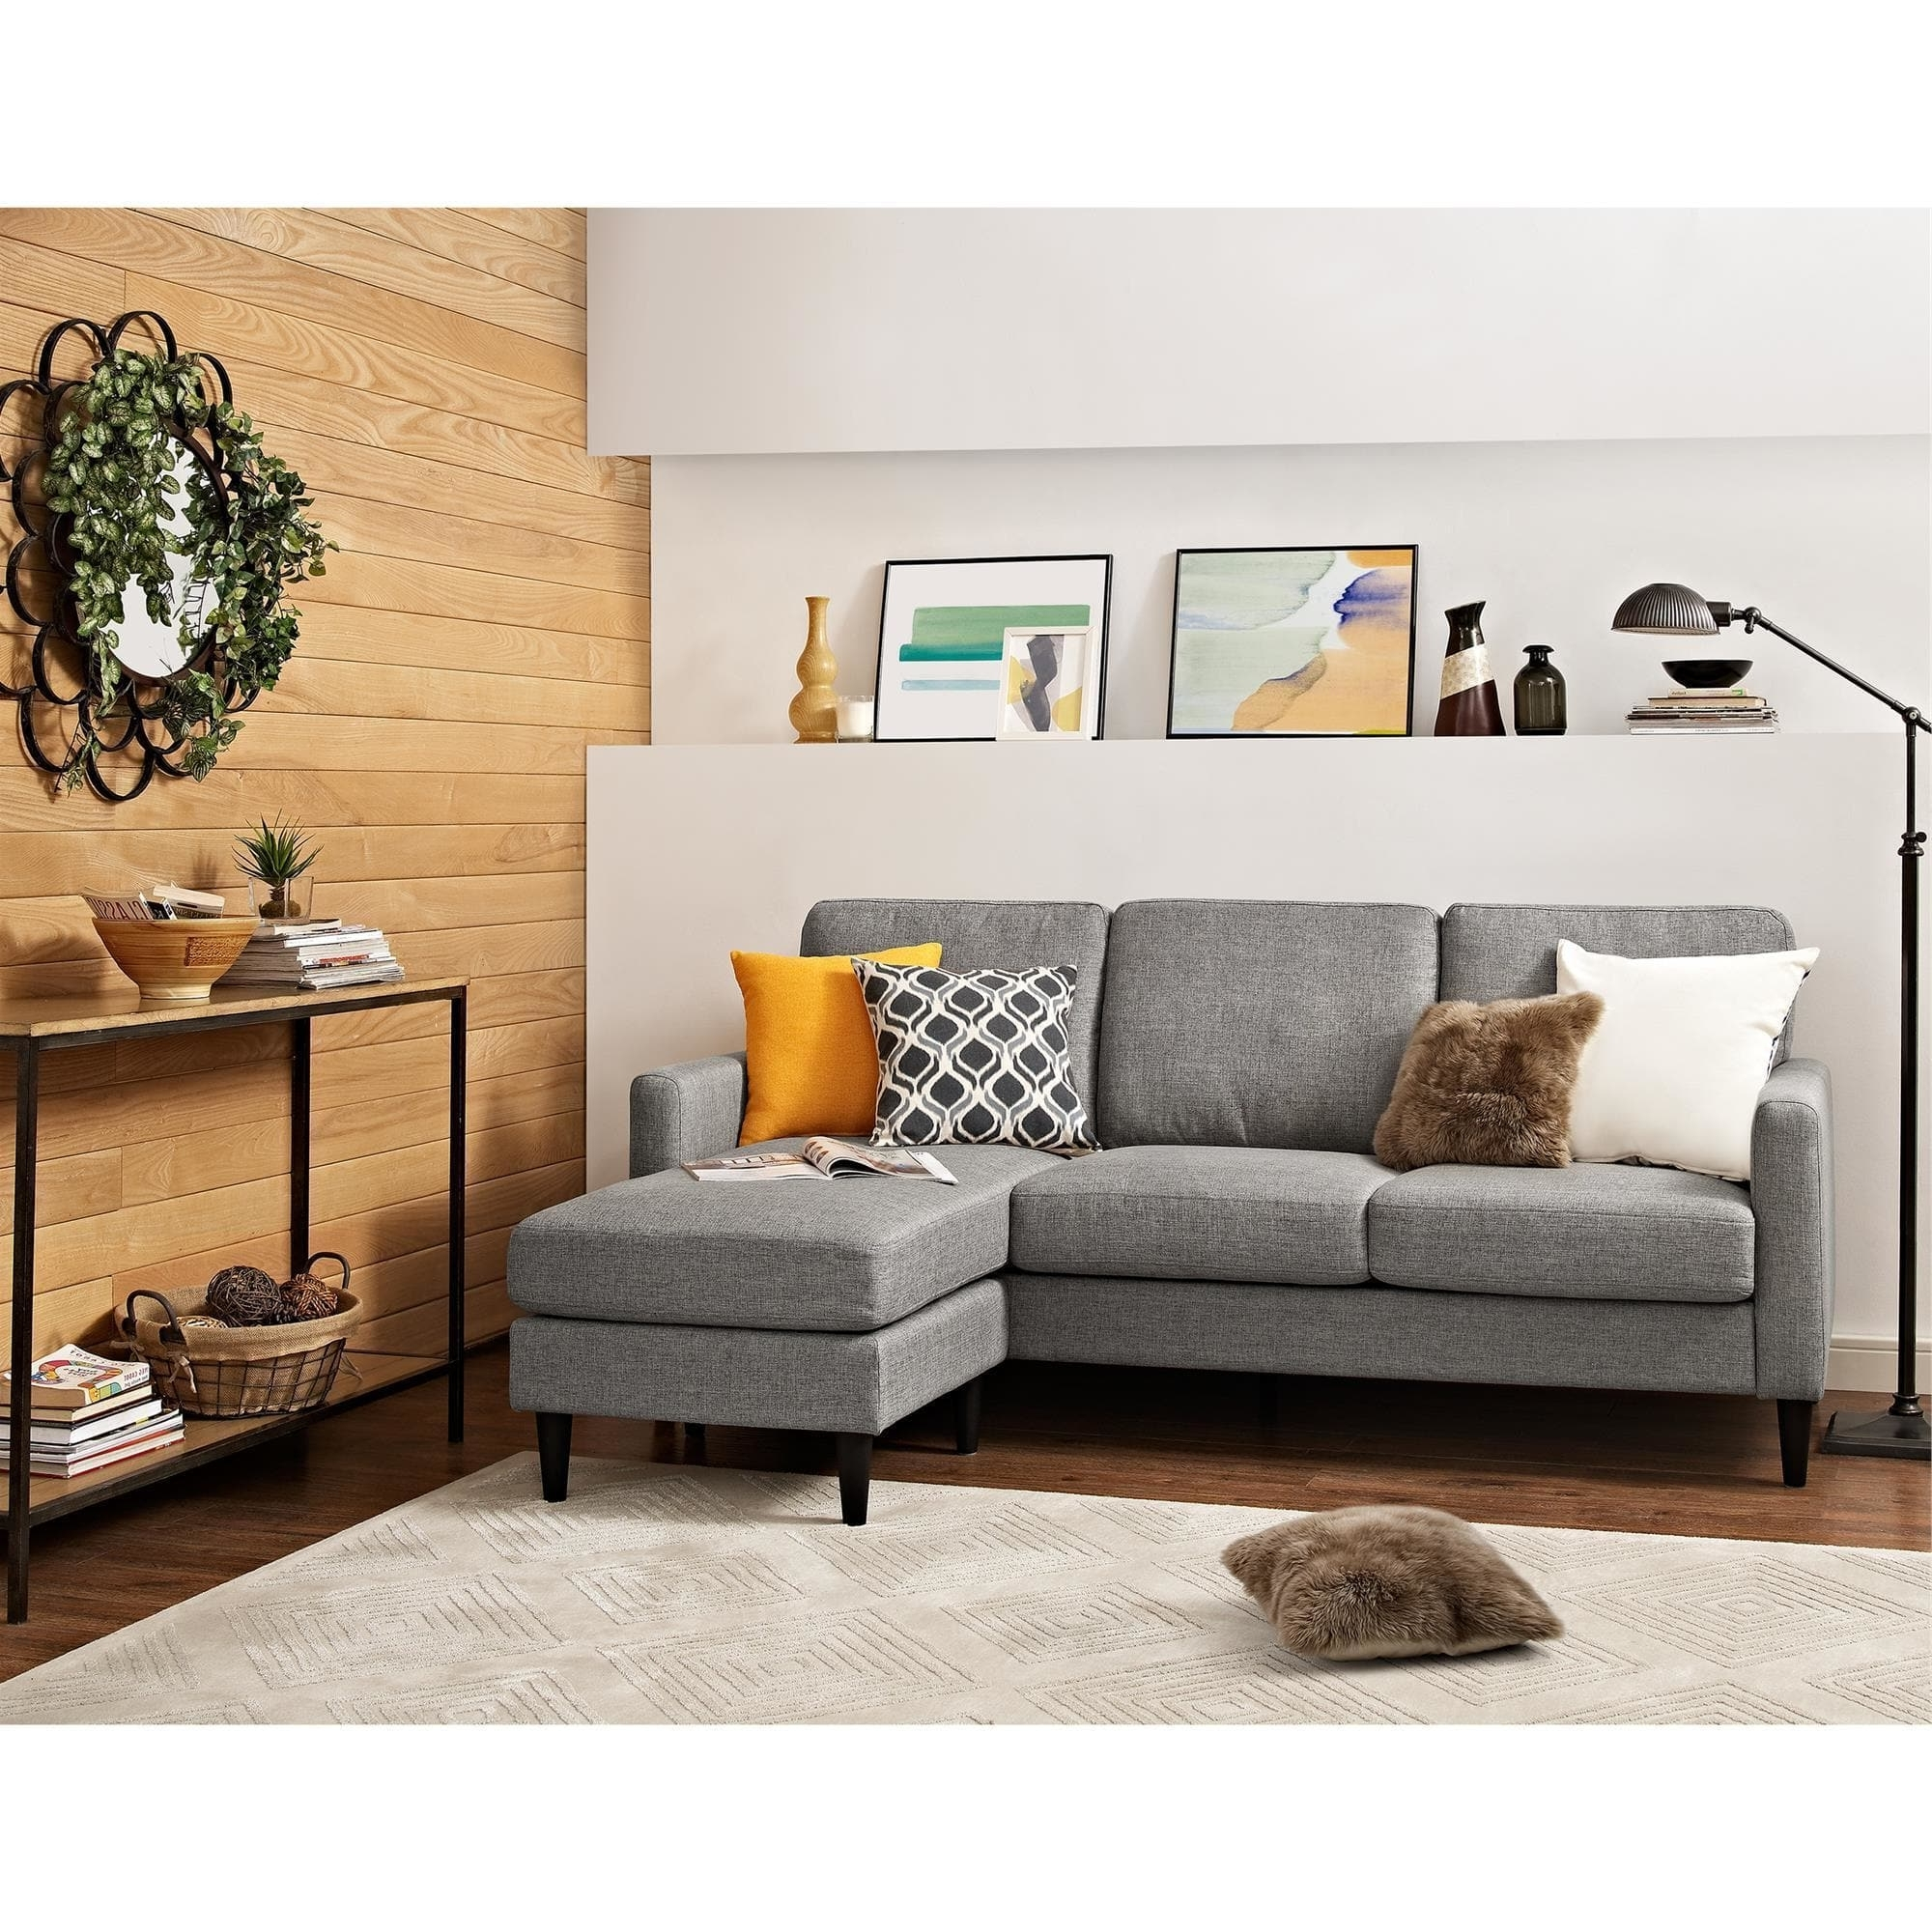 Current Overstock Sectional Sofas For Dorel Living Kaci Grey Sectional Sofa – Free Shipping On Orders (View 2 of 15)